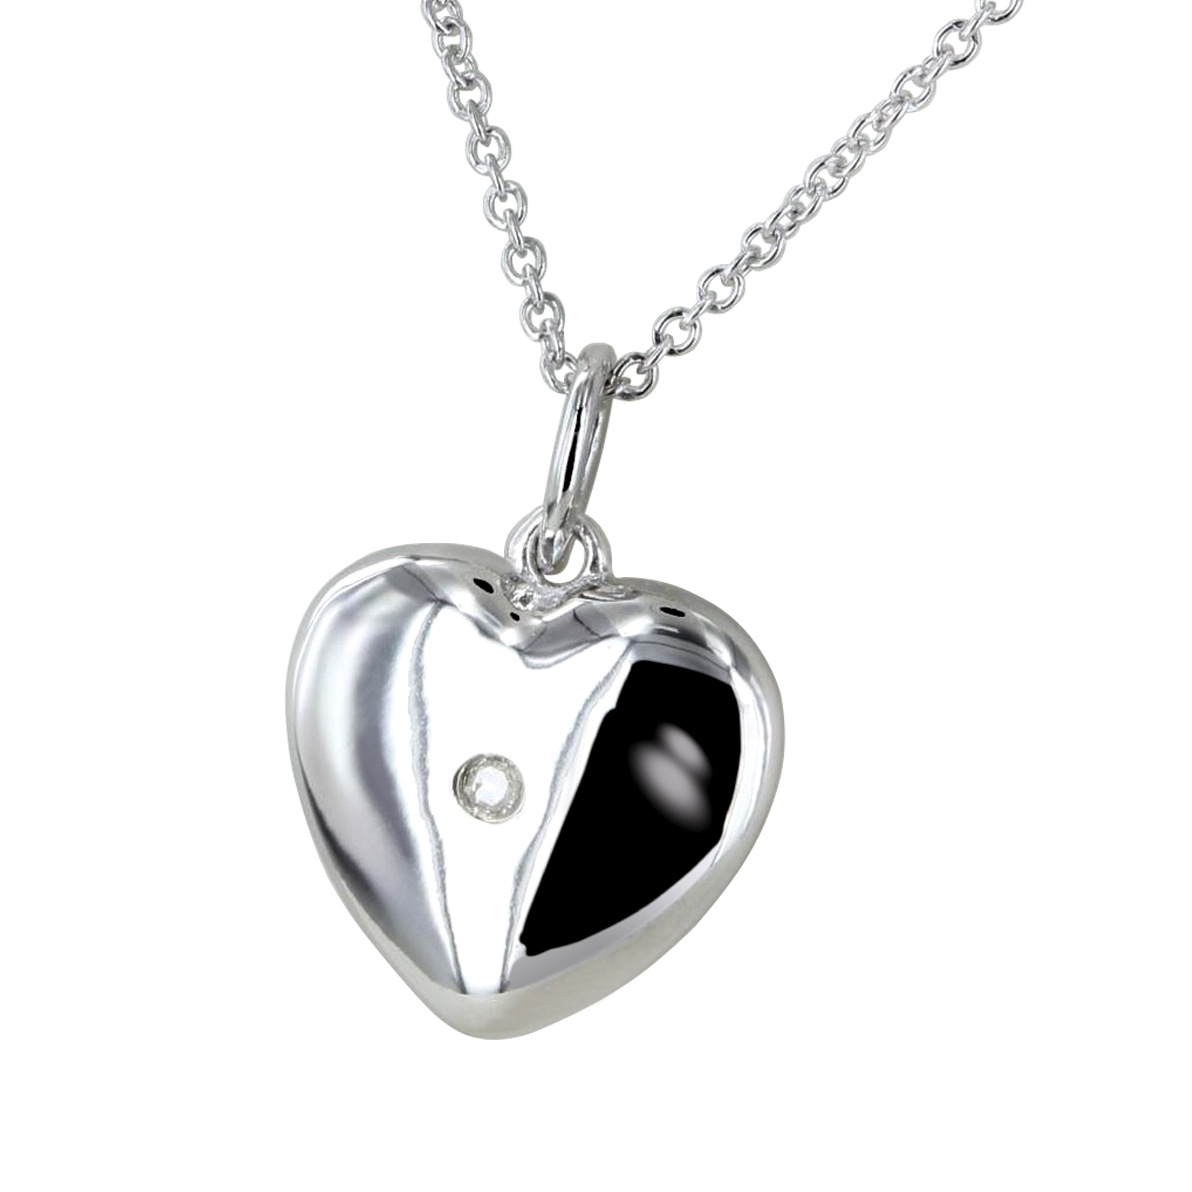 Image featuring close-up of the Chapelle Heart Shaped Necklace